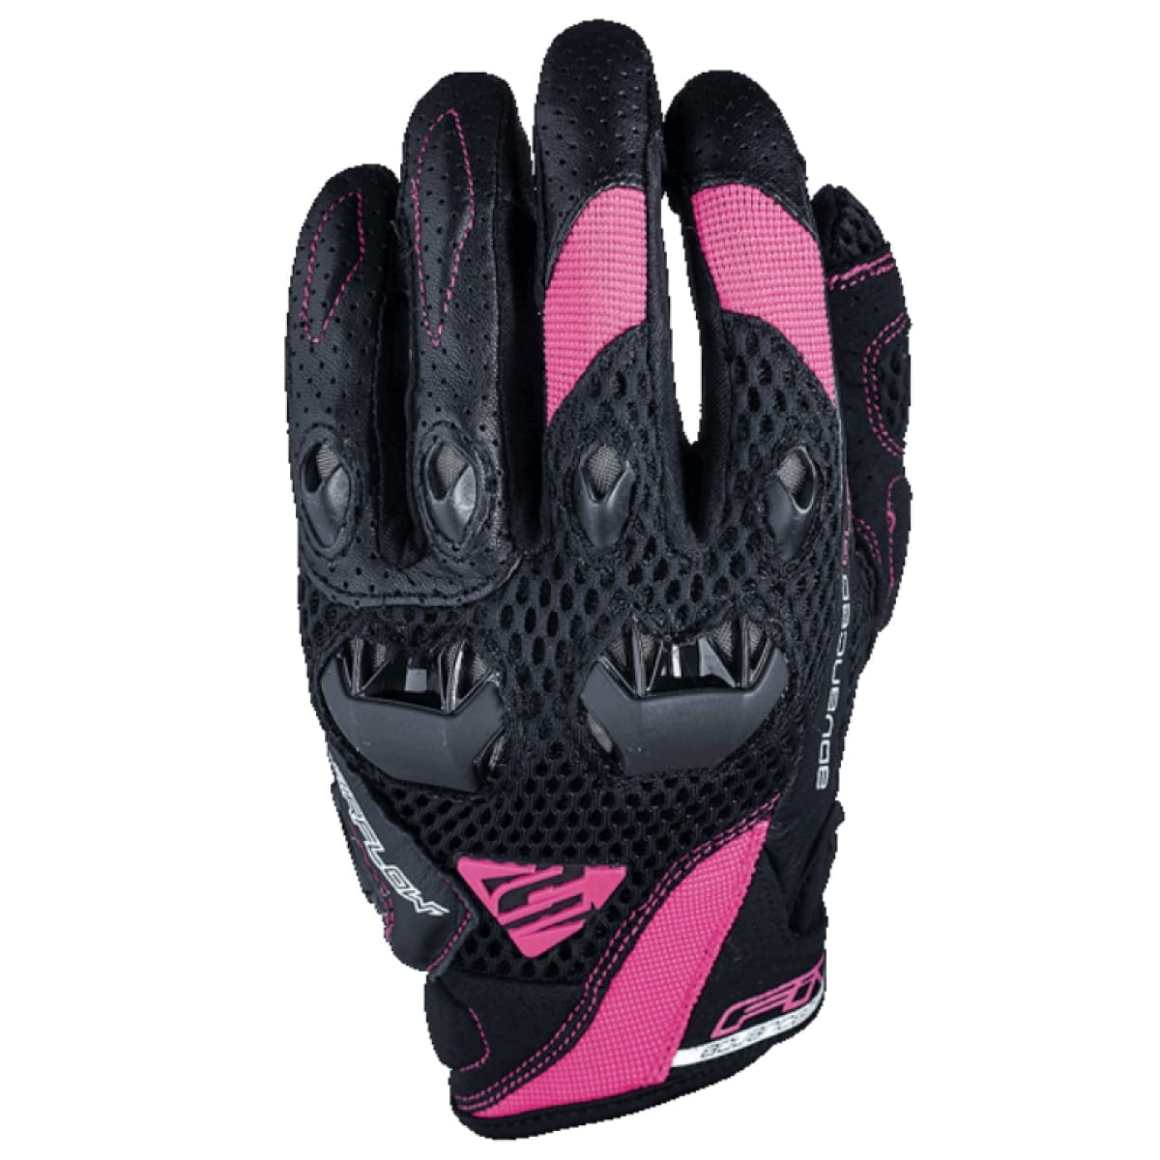 FIVE Gants Stunt Evo Airflow Lady Noir/Rose Image